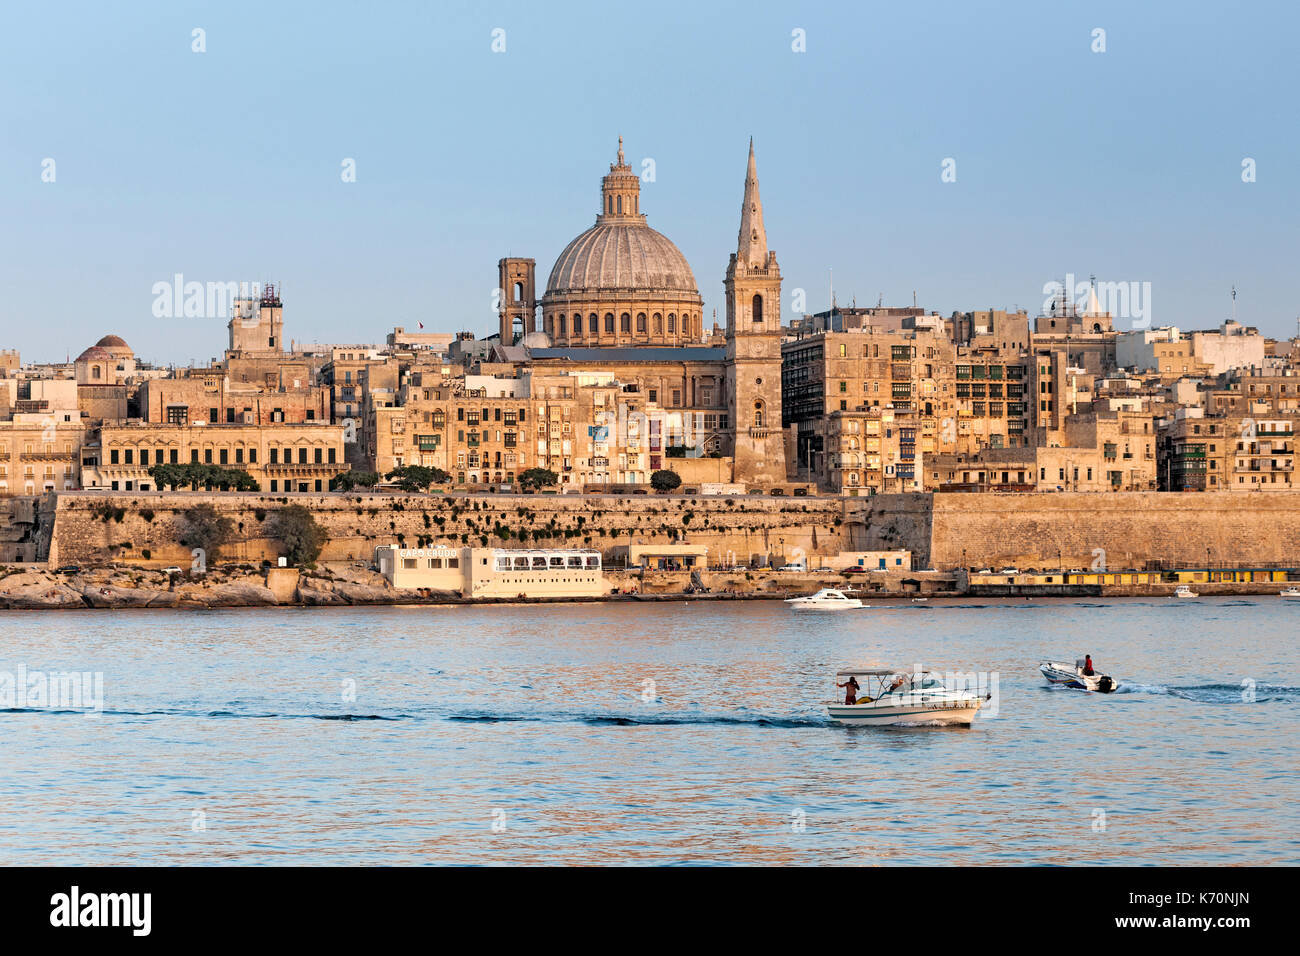 View of the old town of Valletta, the capital of Malta. - Stock Image